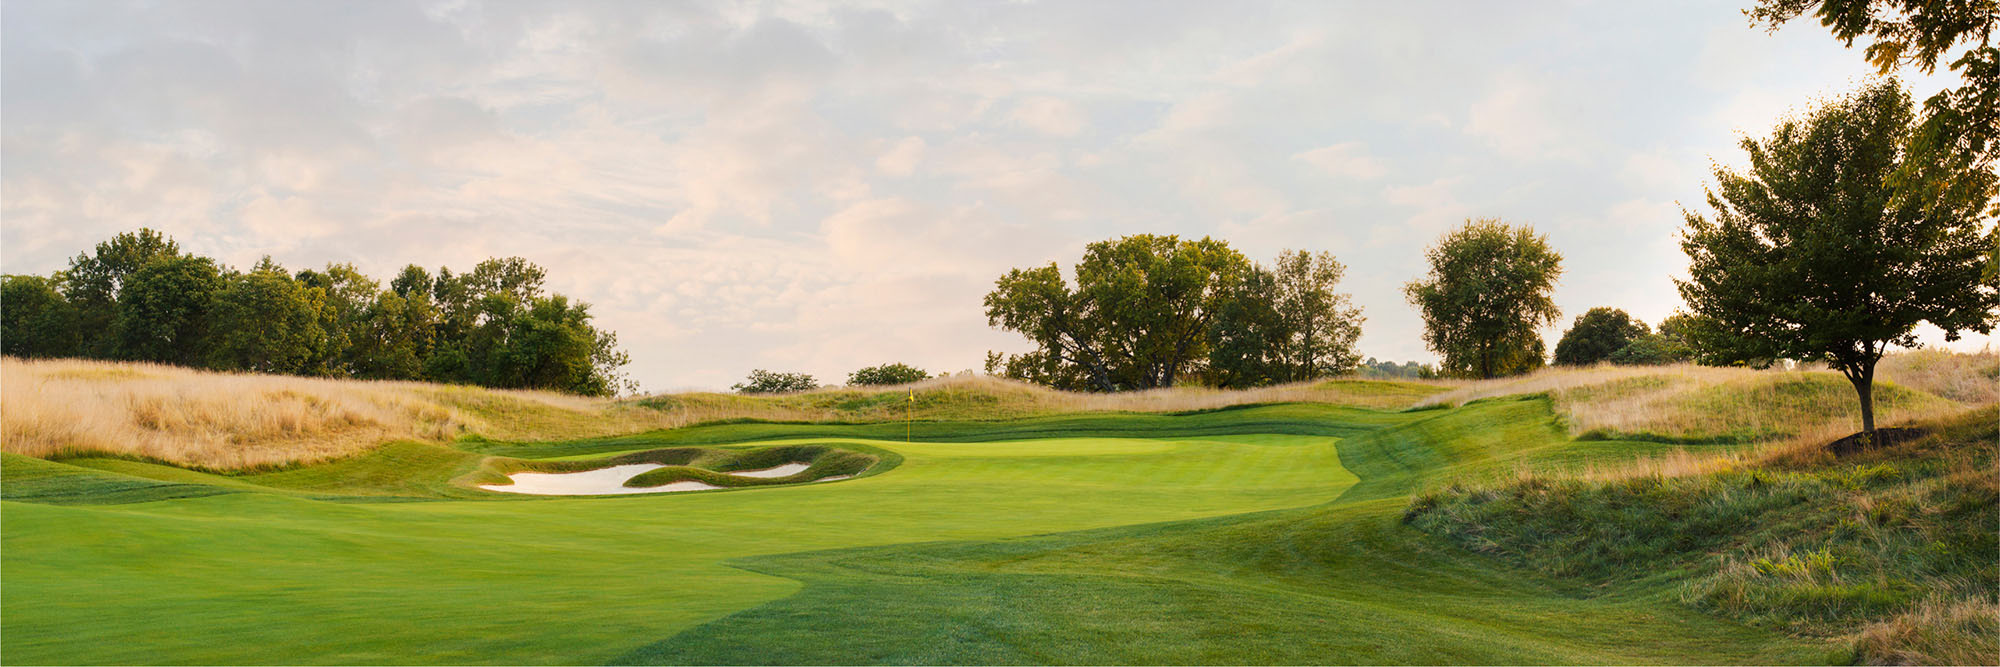 Golf Course Image - Valhalla No. 17